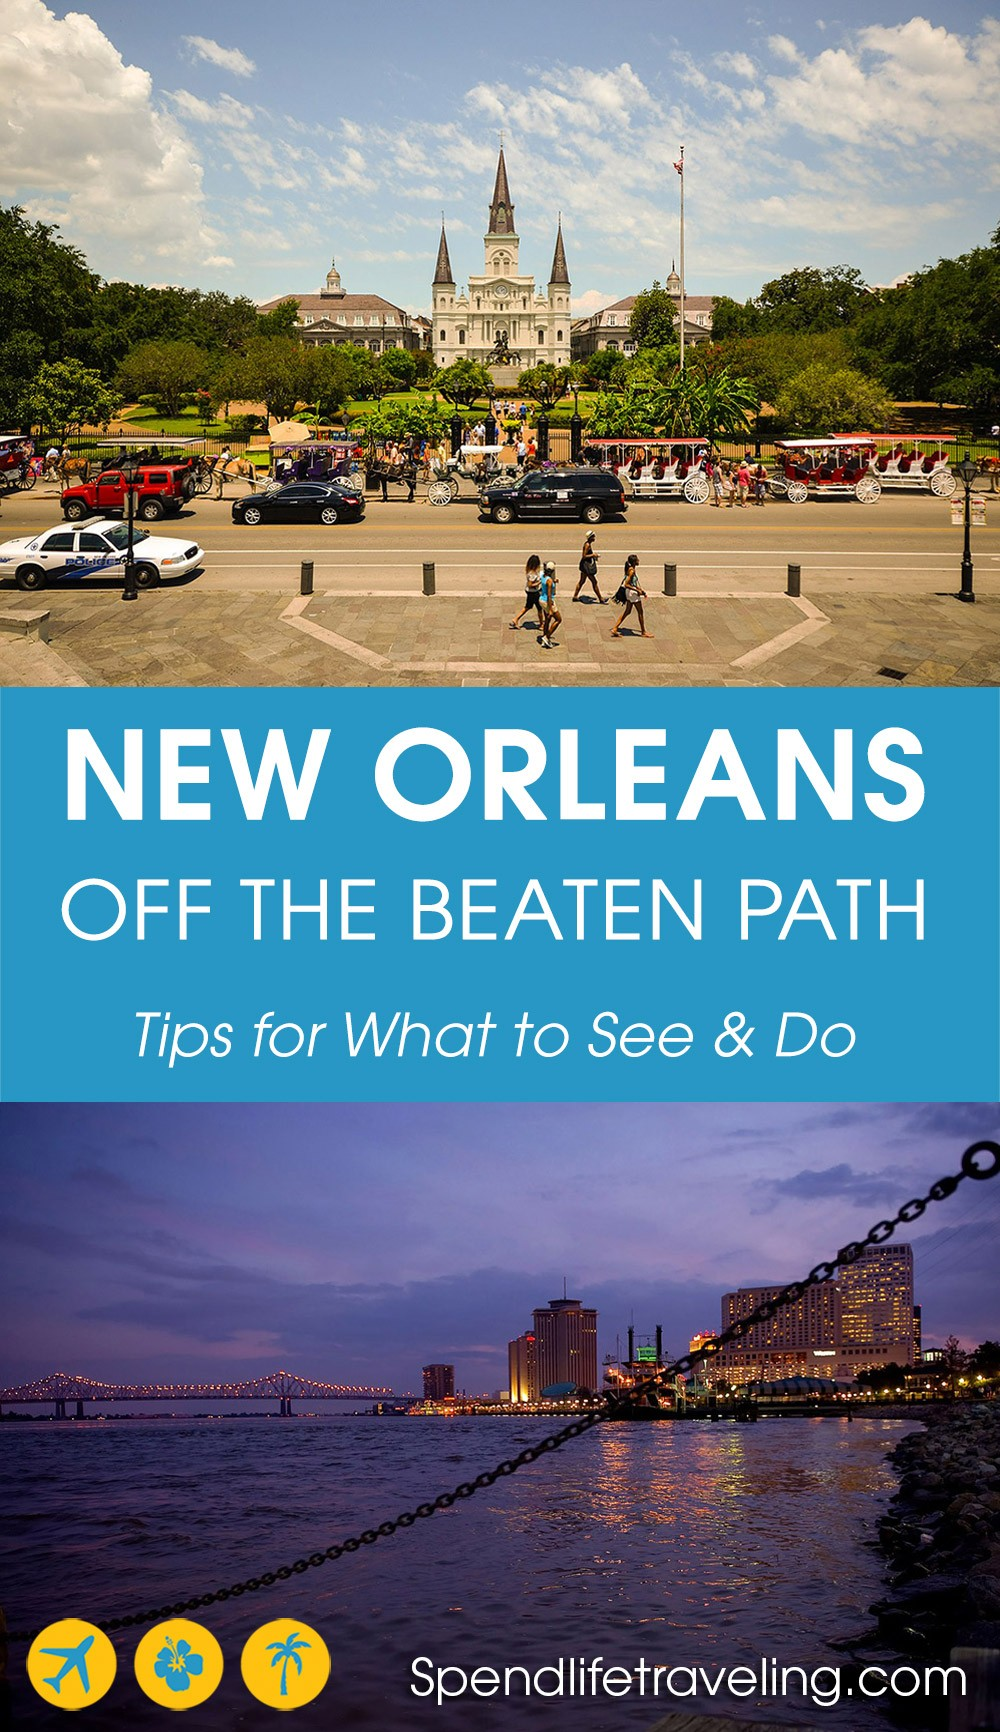 Tips for things to do in New Orleans if you really want to get to know the city. #NewOrleans #Louisiana #offthebeatenpath